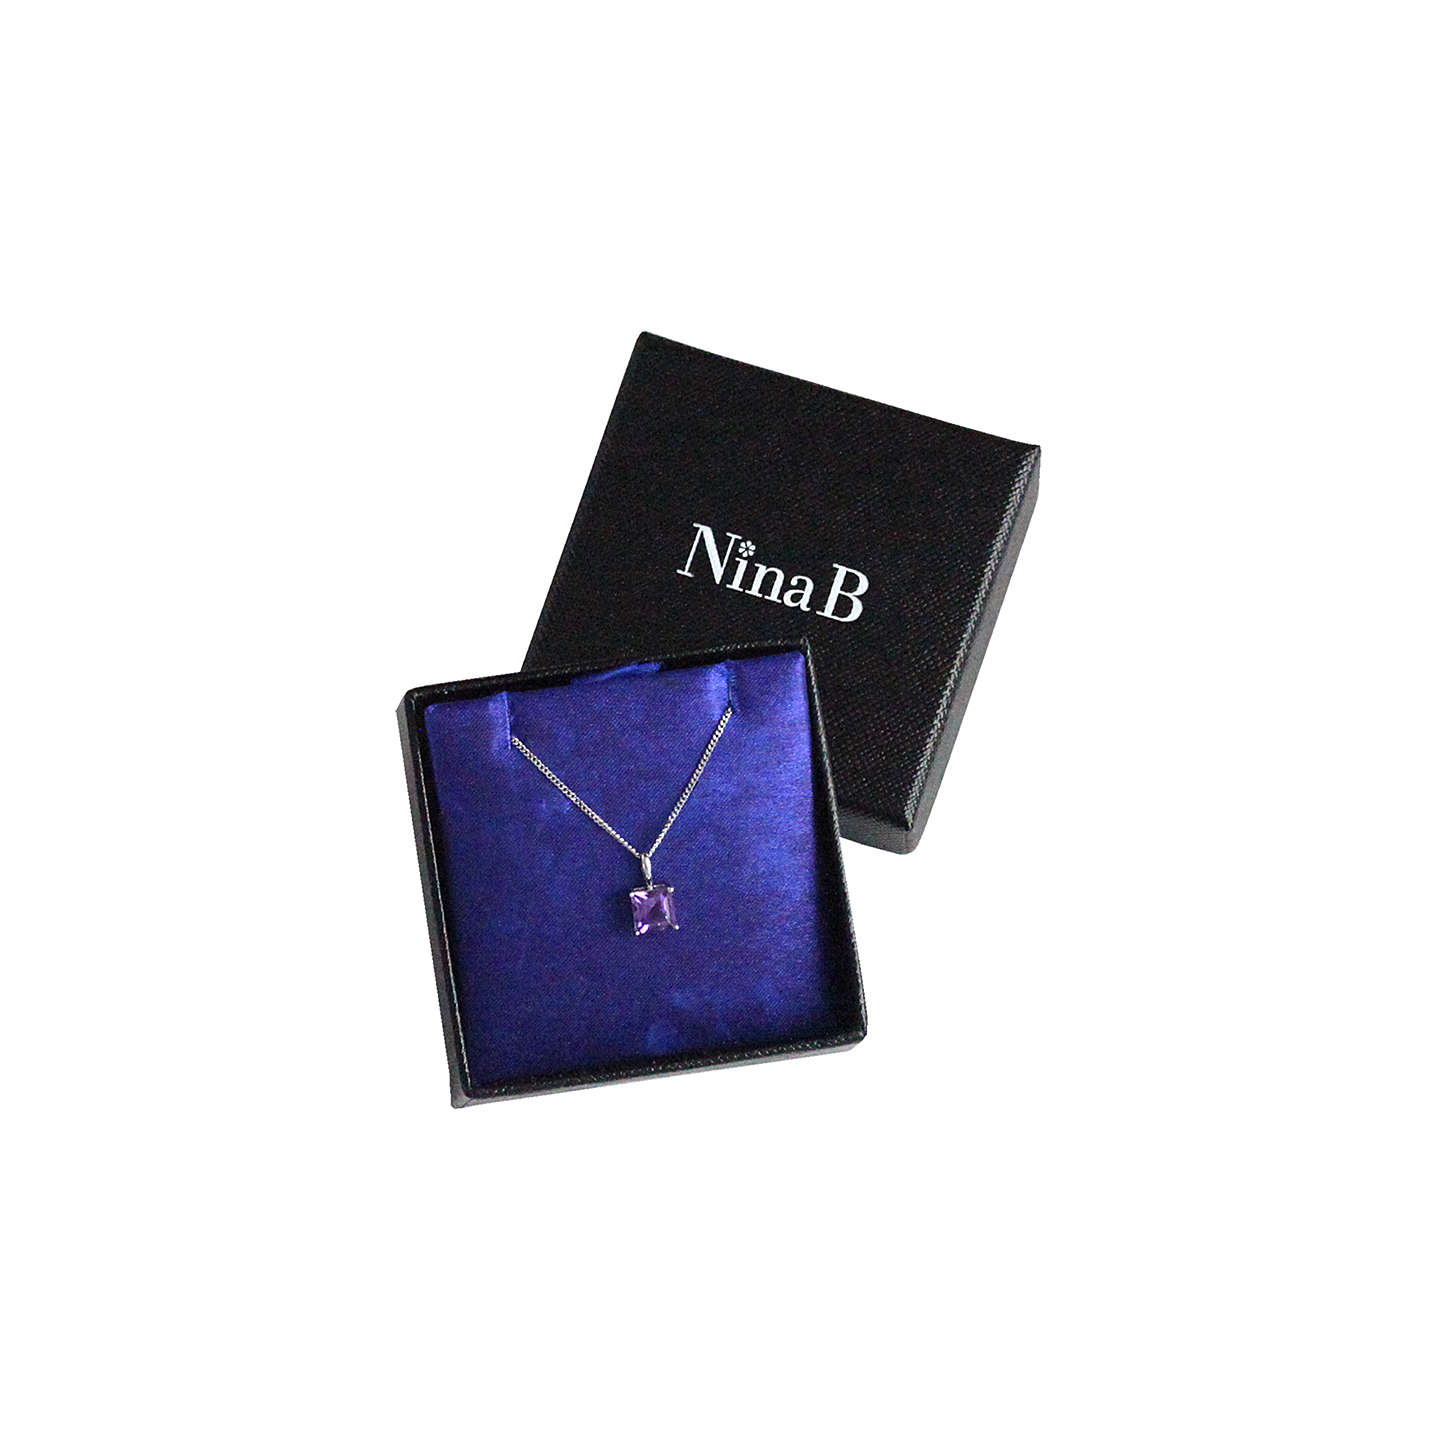 BuyNina B 9ct White Gold Square Pendant Necklace, Amethyst Online at johnlewis.com